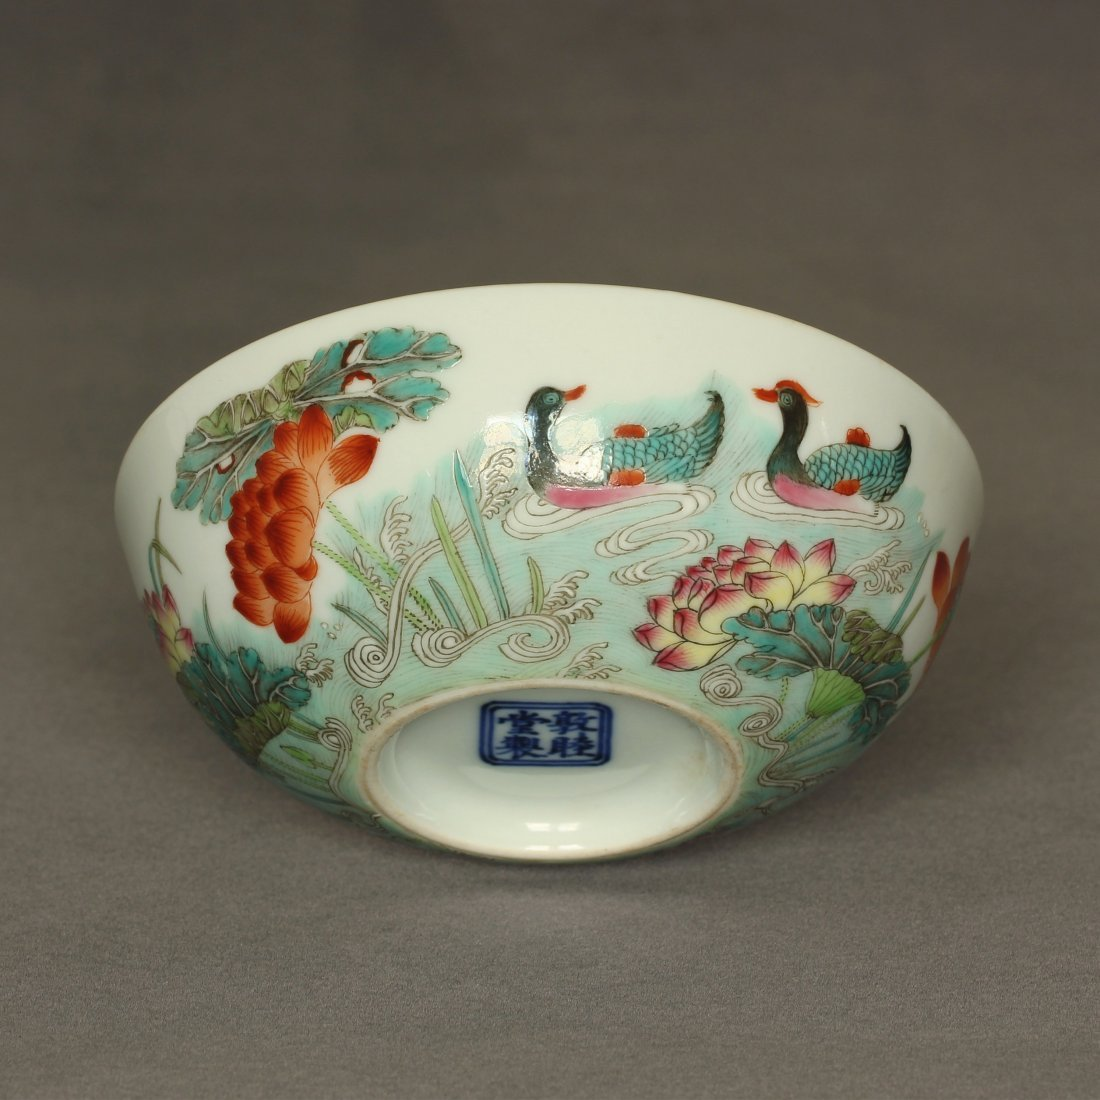 Famille rose porcelain bowl of Qing Dynasty DunMuTang - 8